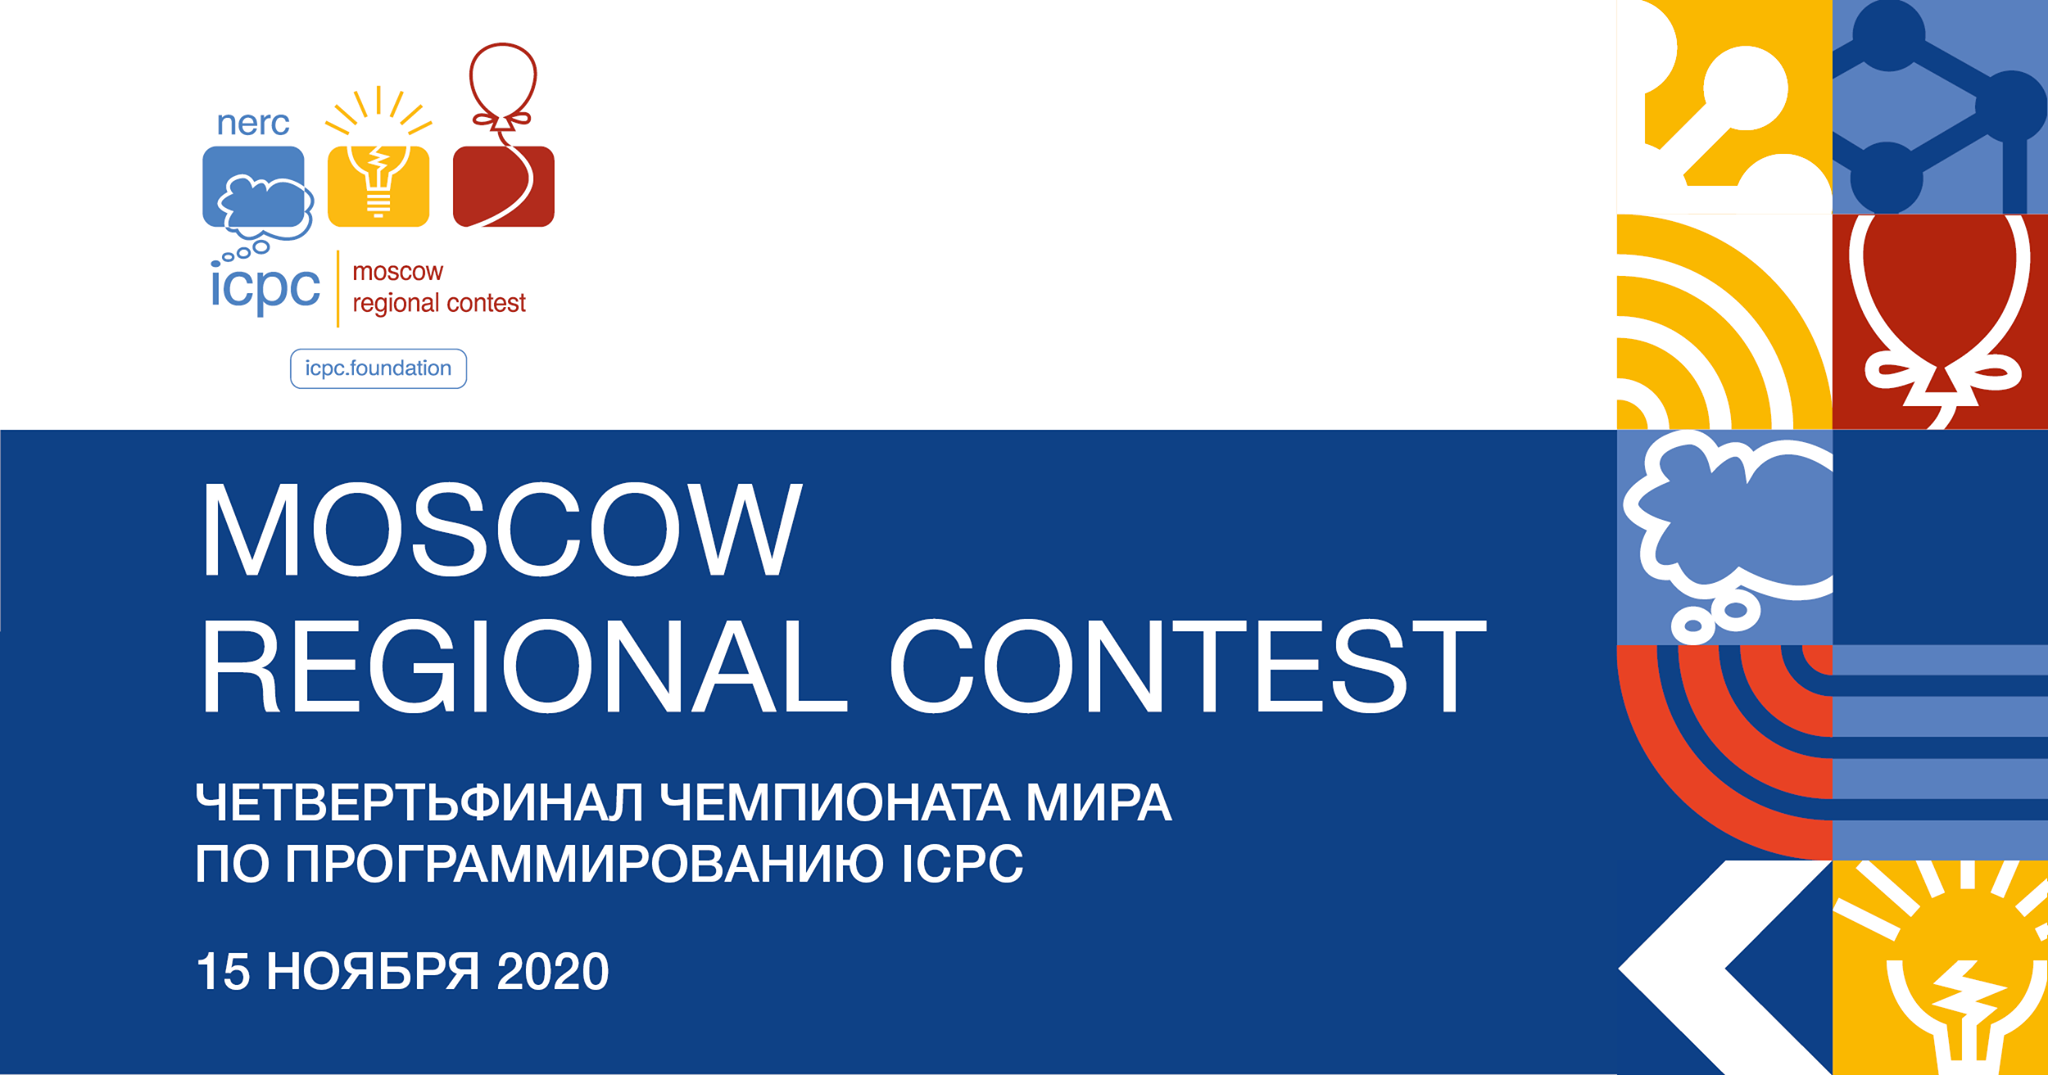 Moscow Regional Contest